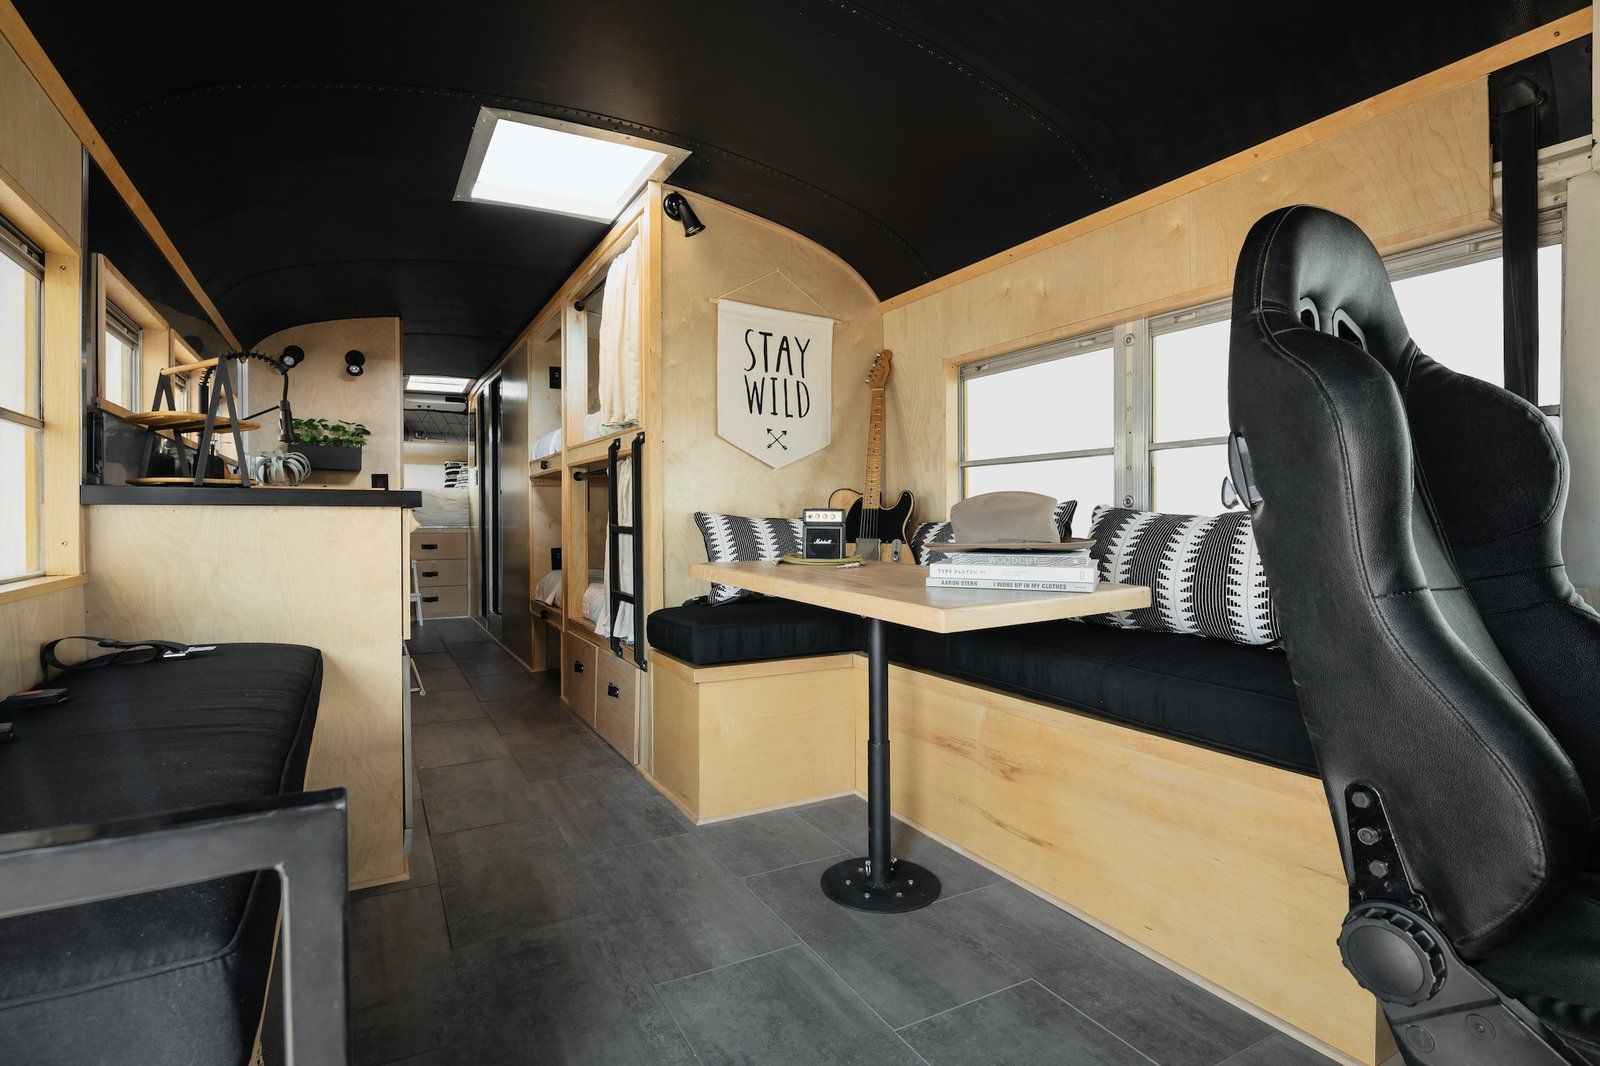 Photo 11 Of 16 In A 1980s School Bus Becomes A Tiny Home With In 2020 School Bus Tiny House Tiny House Family School Bus